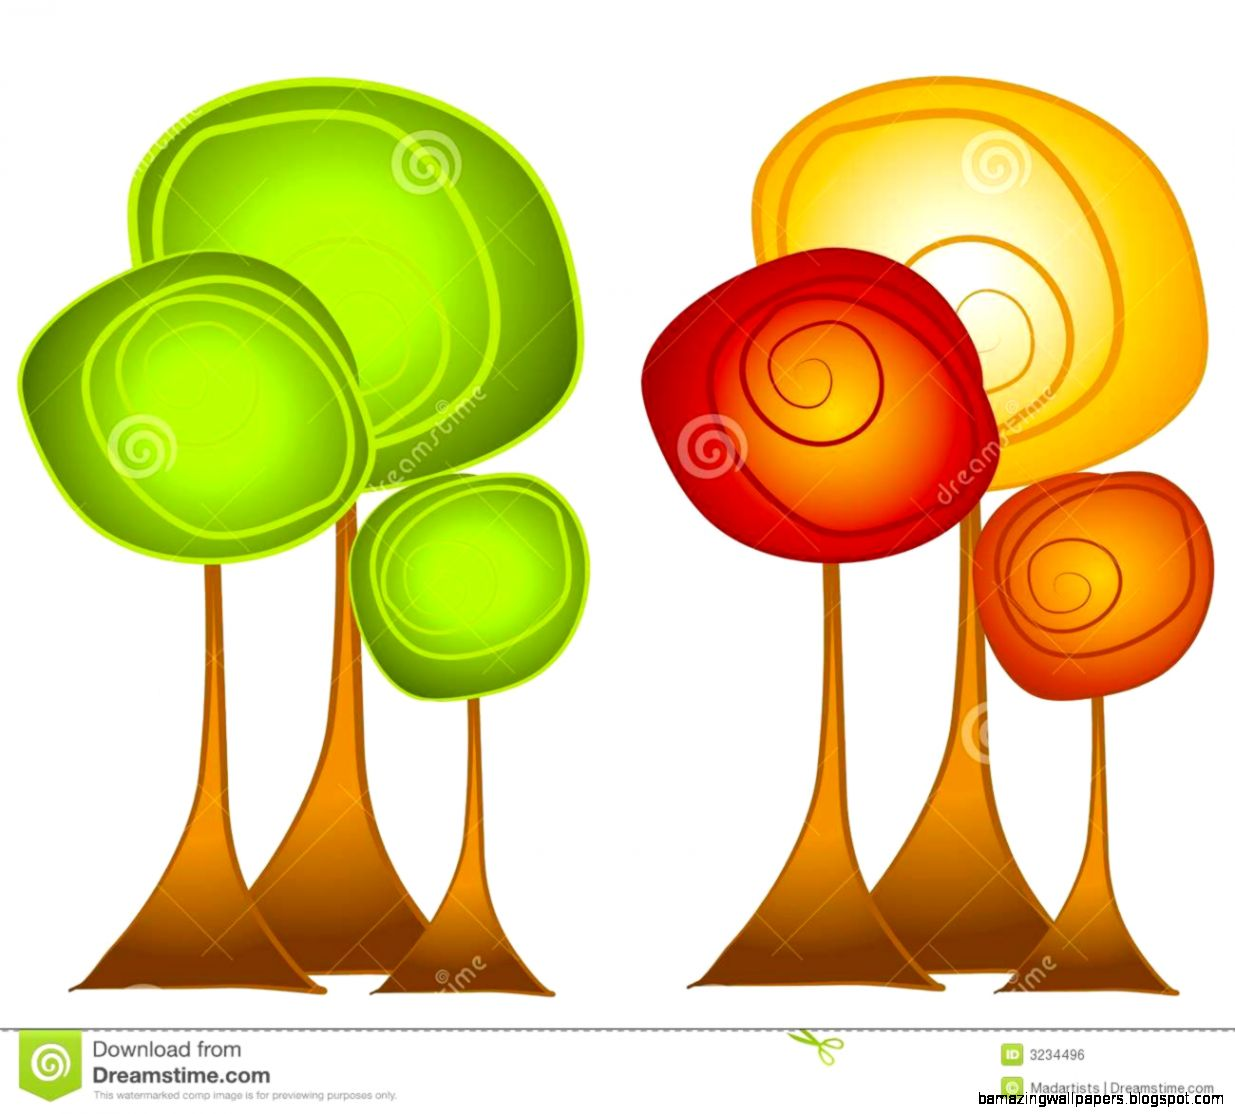 Fall And Summer Trees Clip Art Royalty Free Stock Image   Image